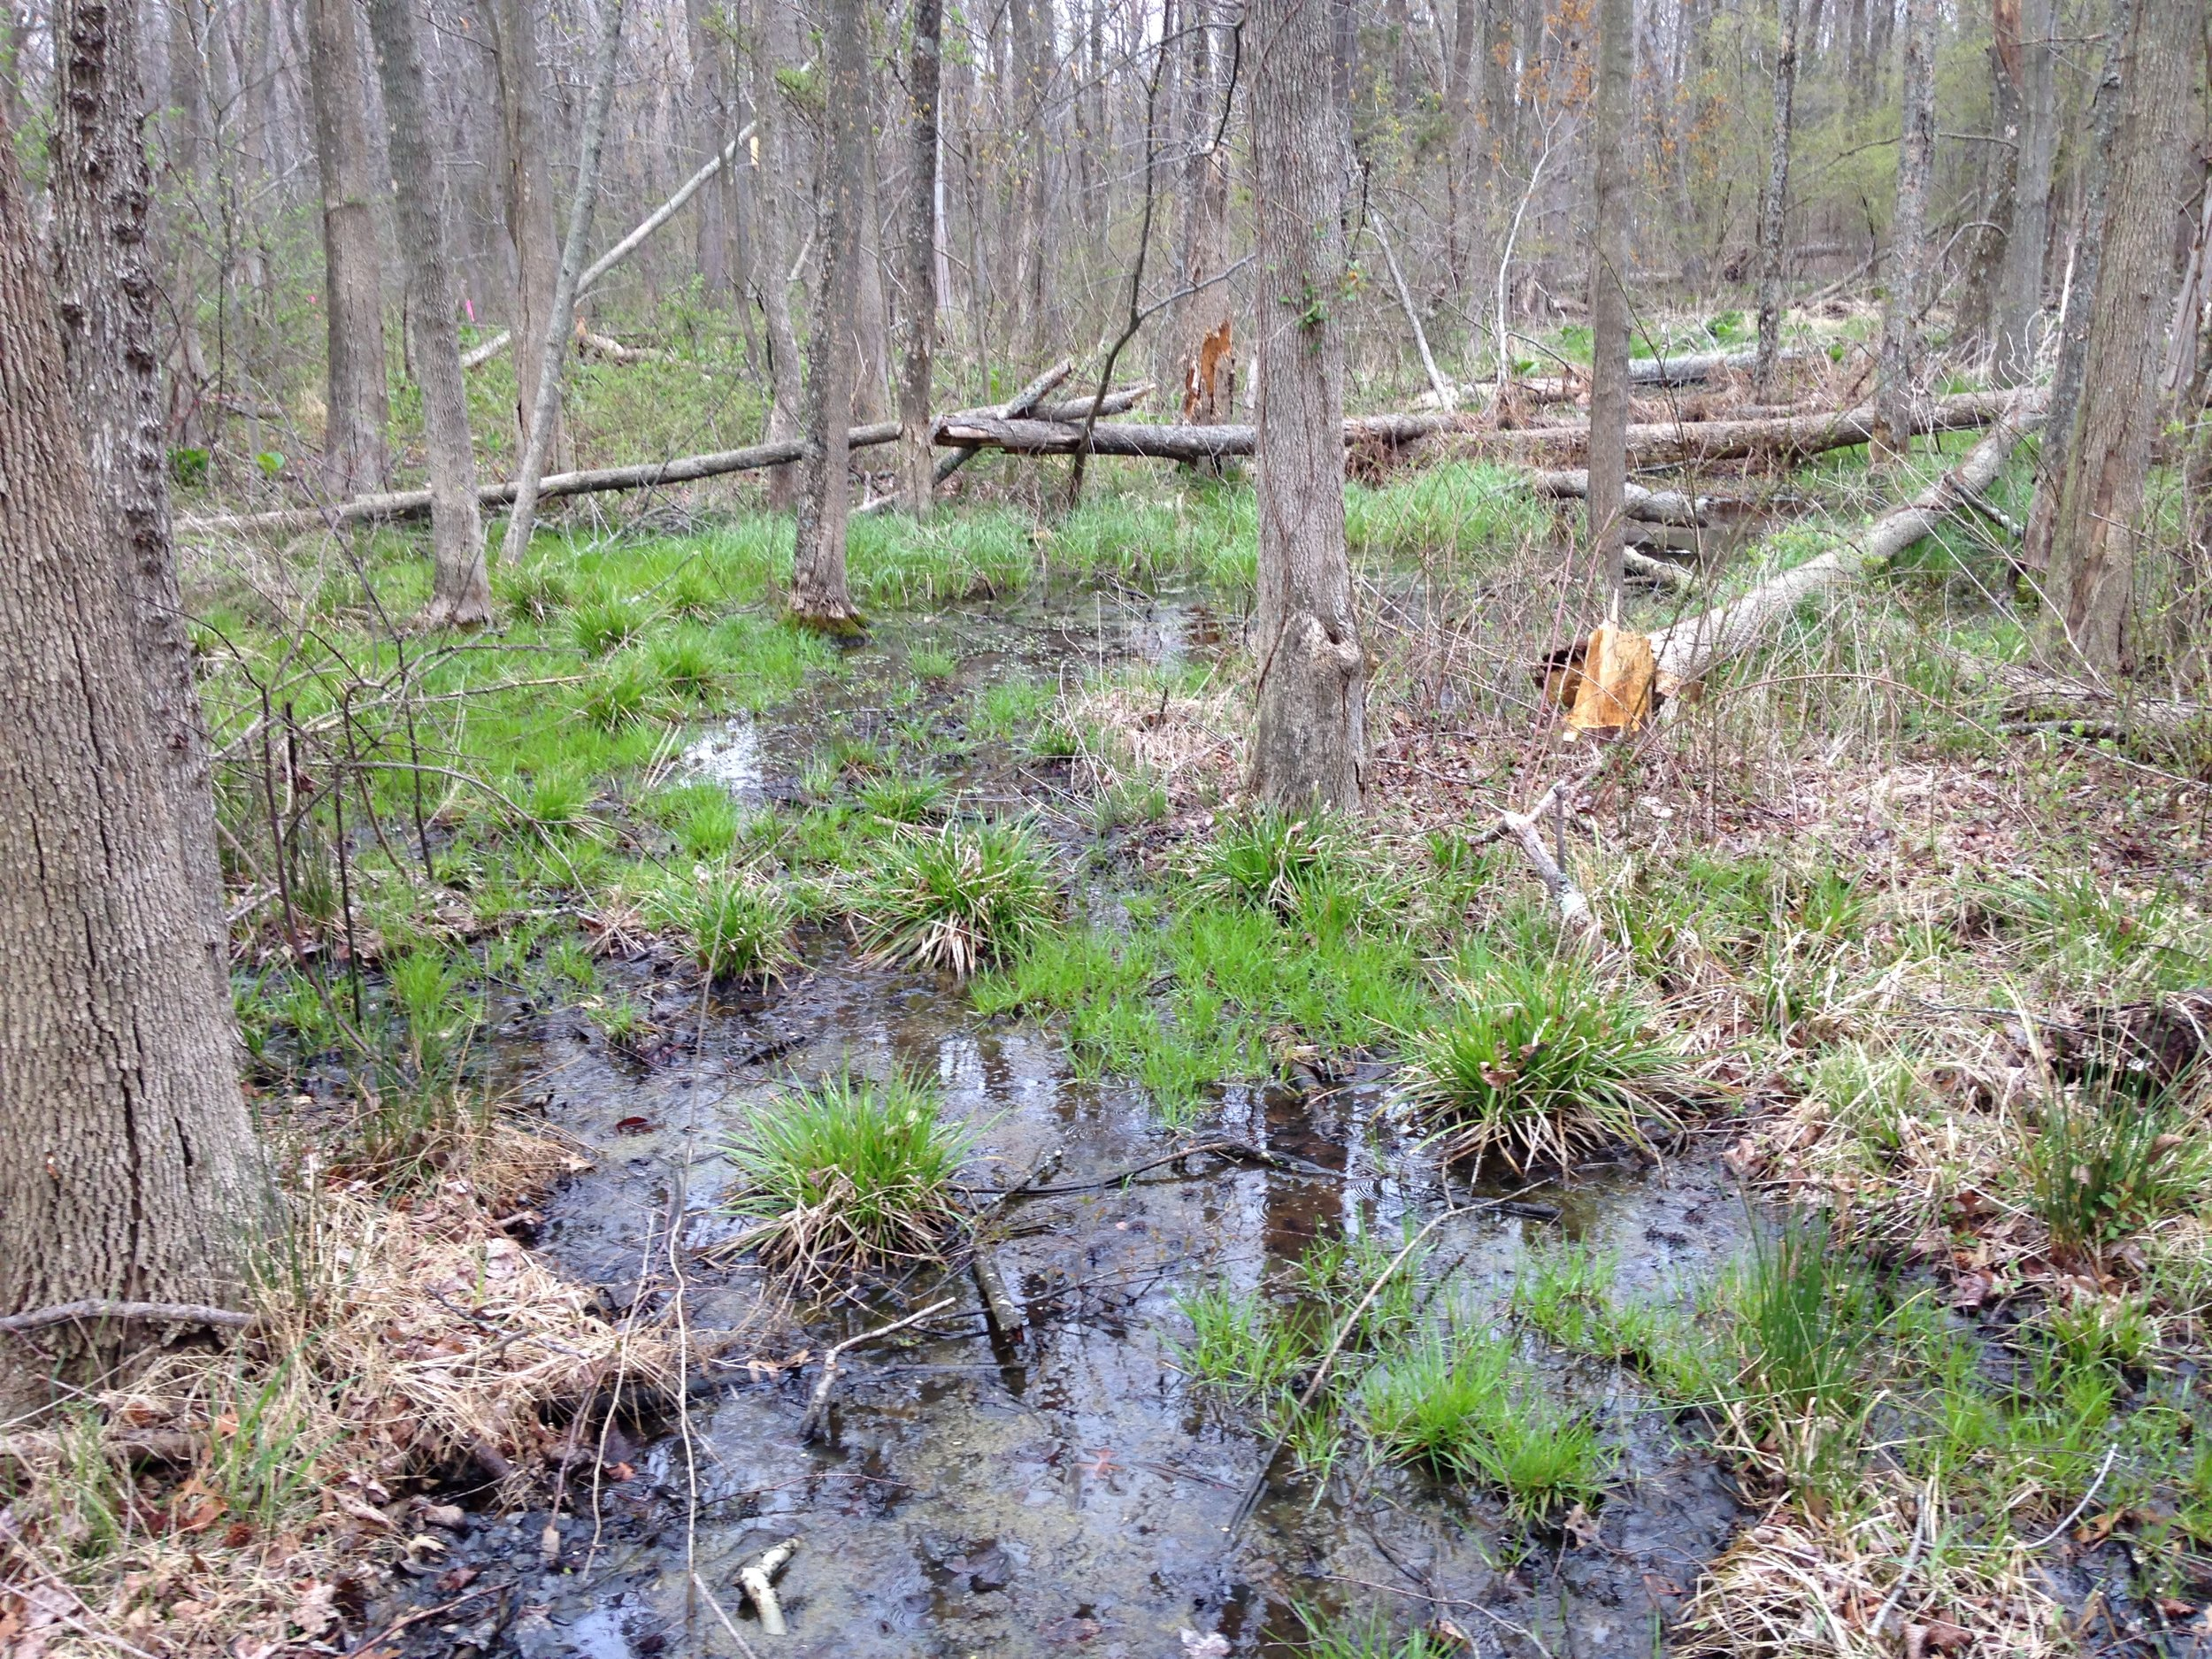 Sedges in a forested wetland, Anne Arundel County, Maryland